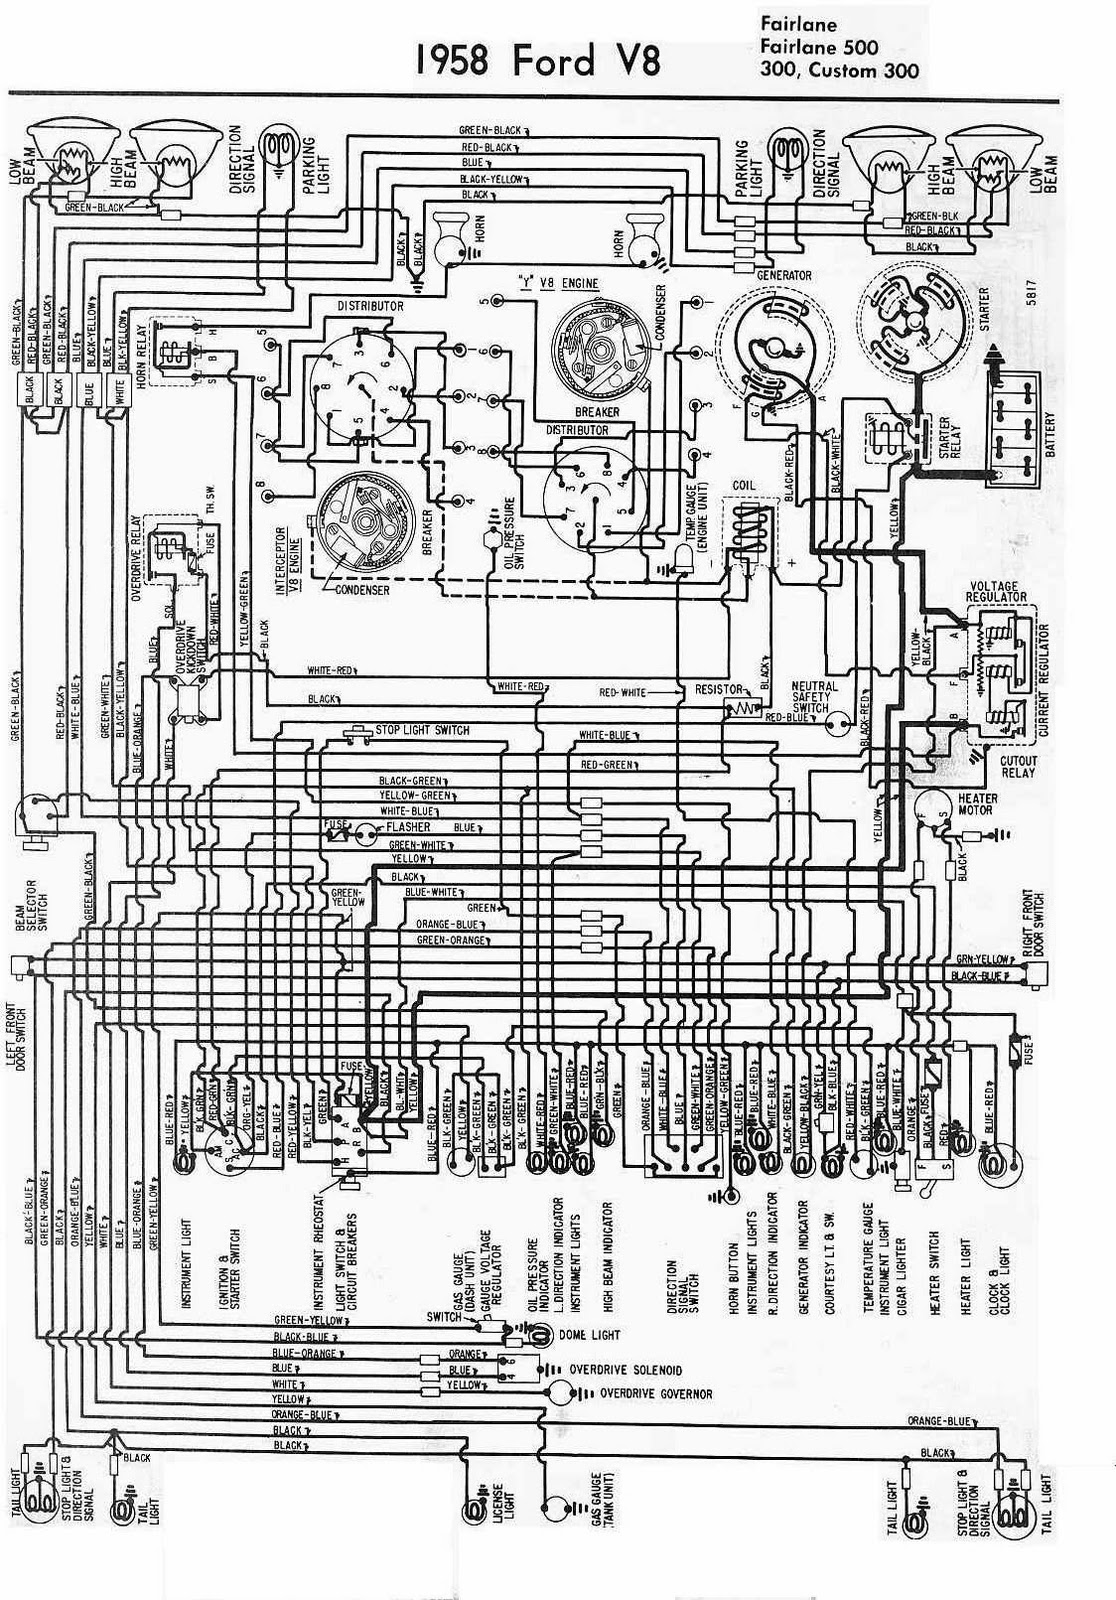 ford f100 wiring harness wiring diagram1979 f 100 wiring diagrams wiring diagram ford f100